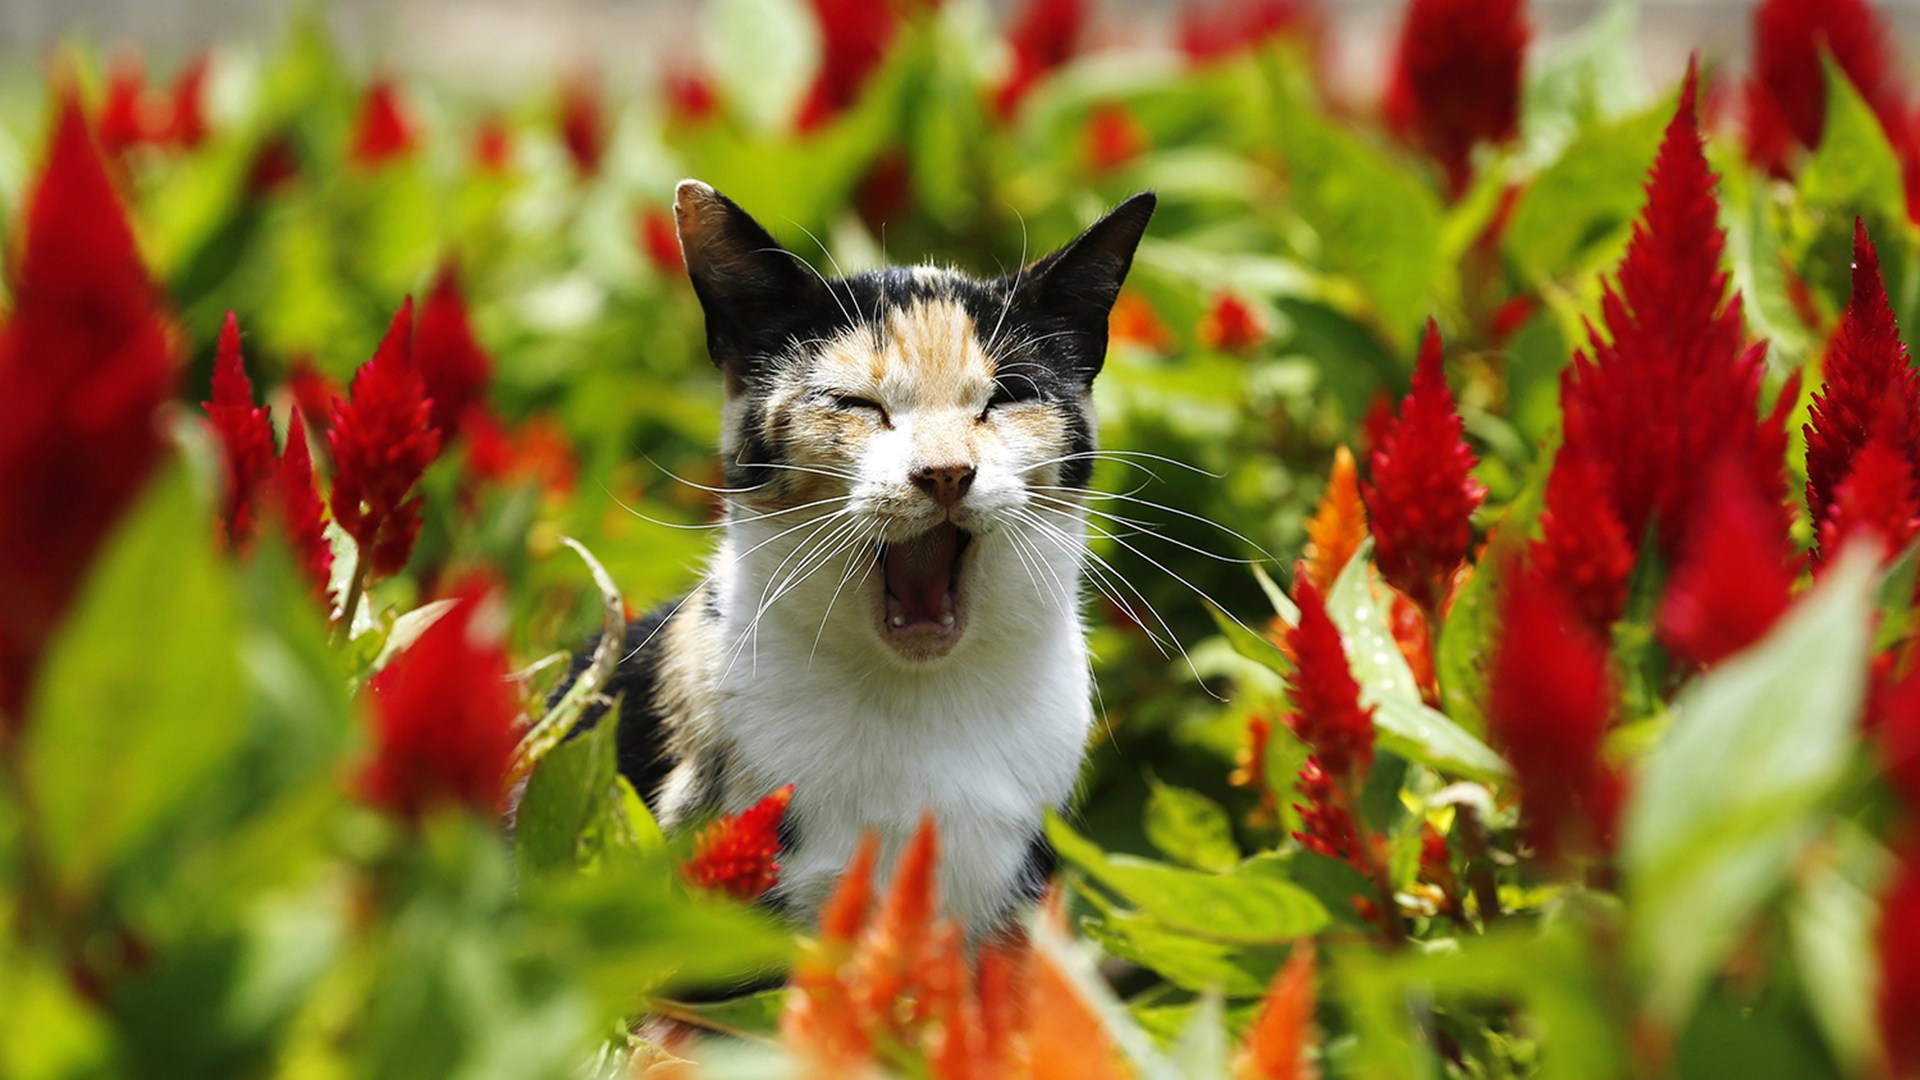 Image: A cat yawns at Kennedy Park in Miraflores district, in Lima